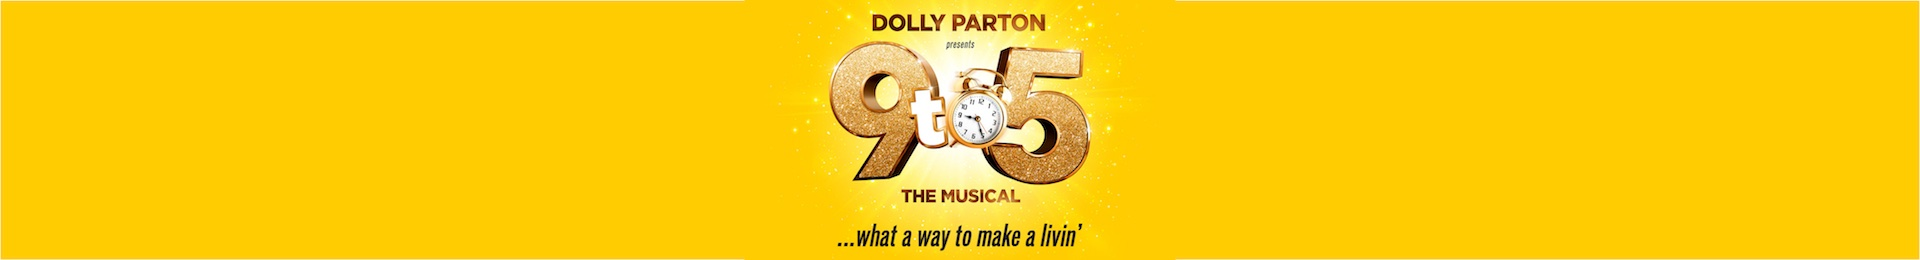 9 to 5: The Musical at the Savoy Theatre in London